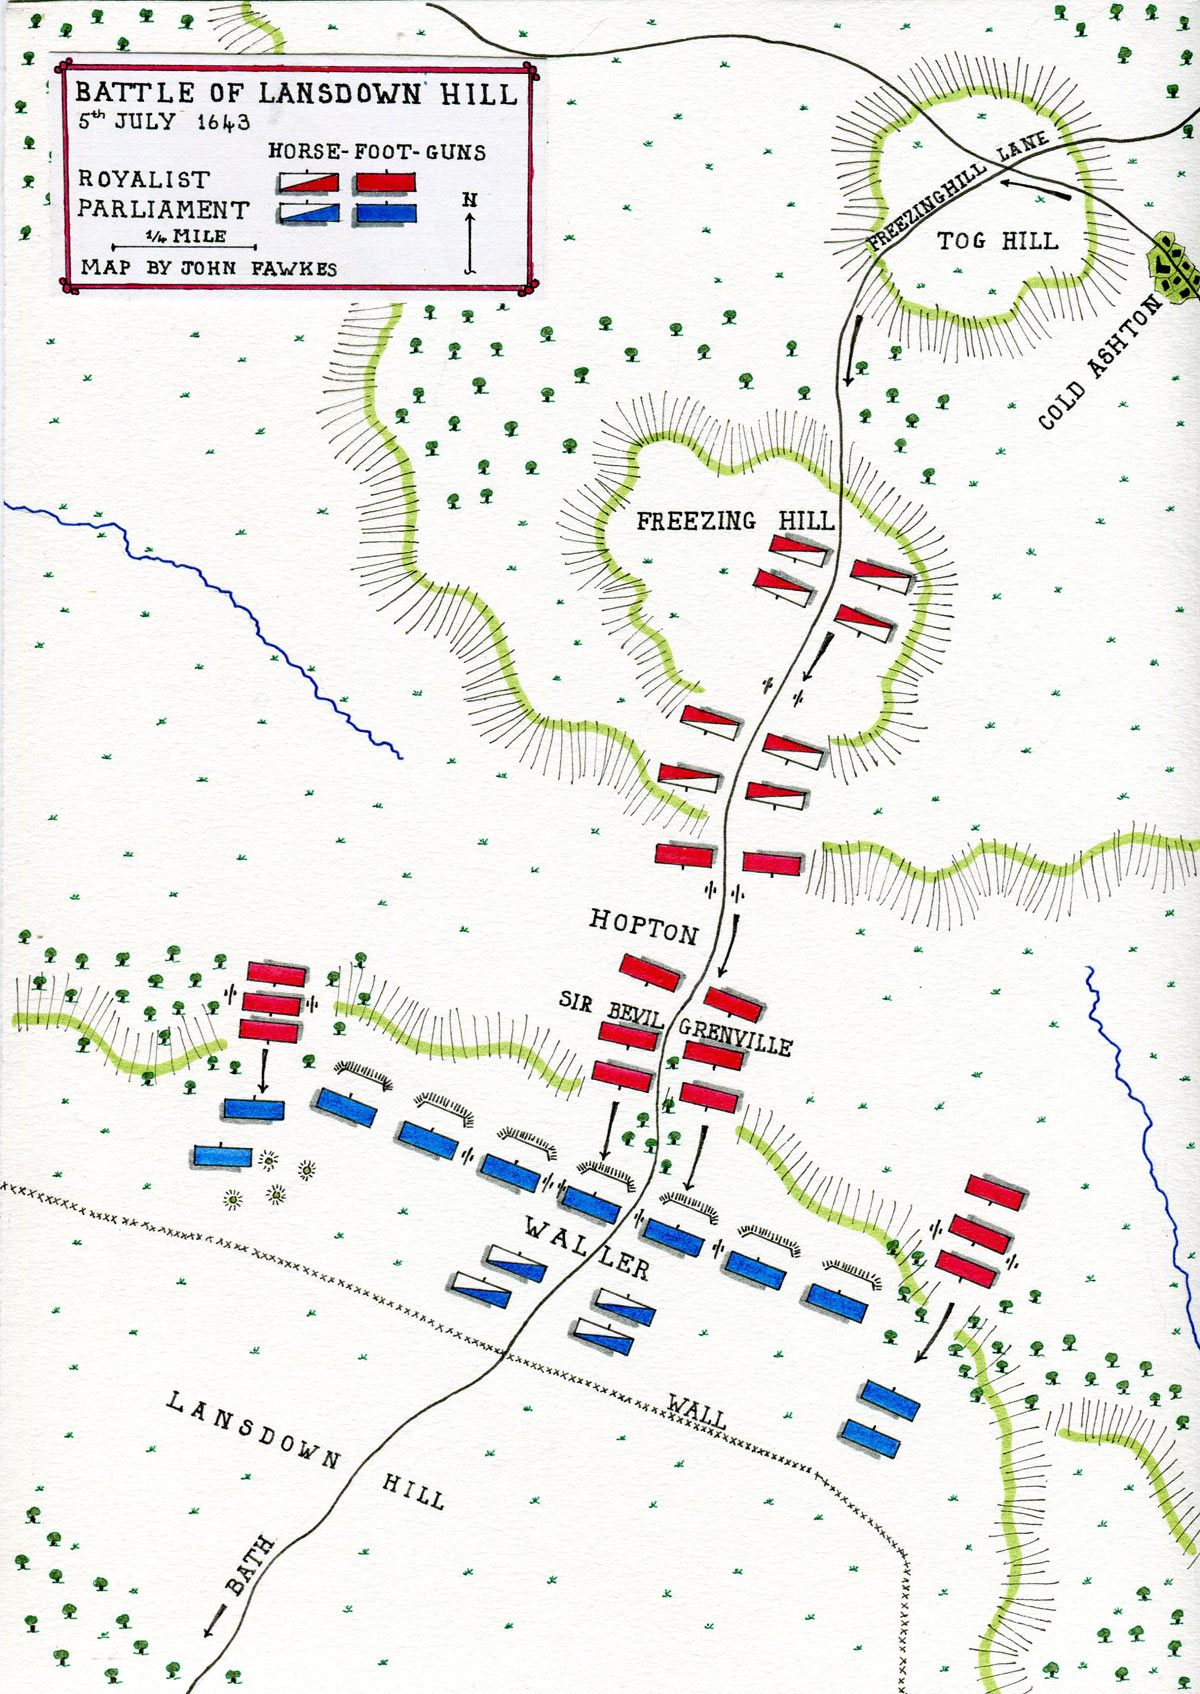 Map of the Battle of Lansdown Hill on 5th July 1643 in the English Civil War: map by John Fawkes